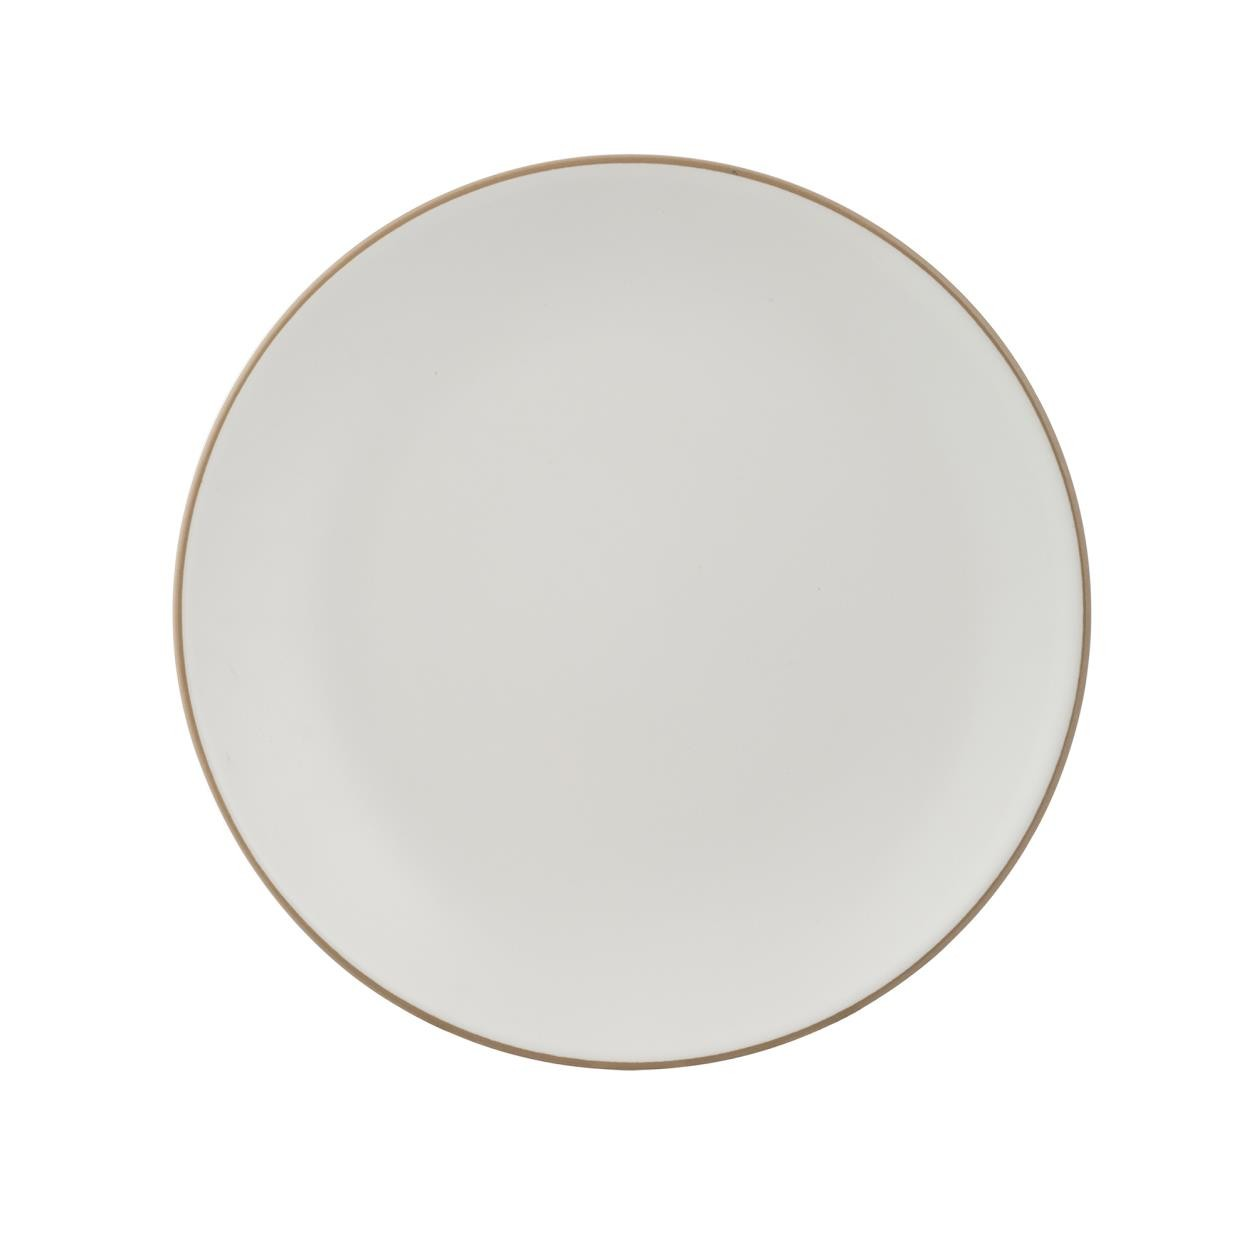 CLASSIC COLLECTION CREAM DINNER PLATE